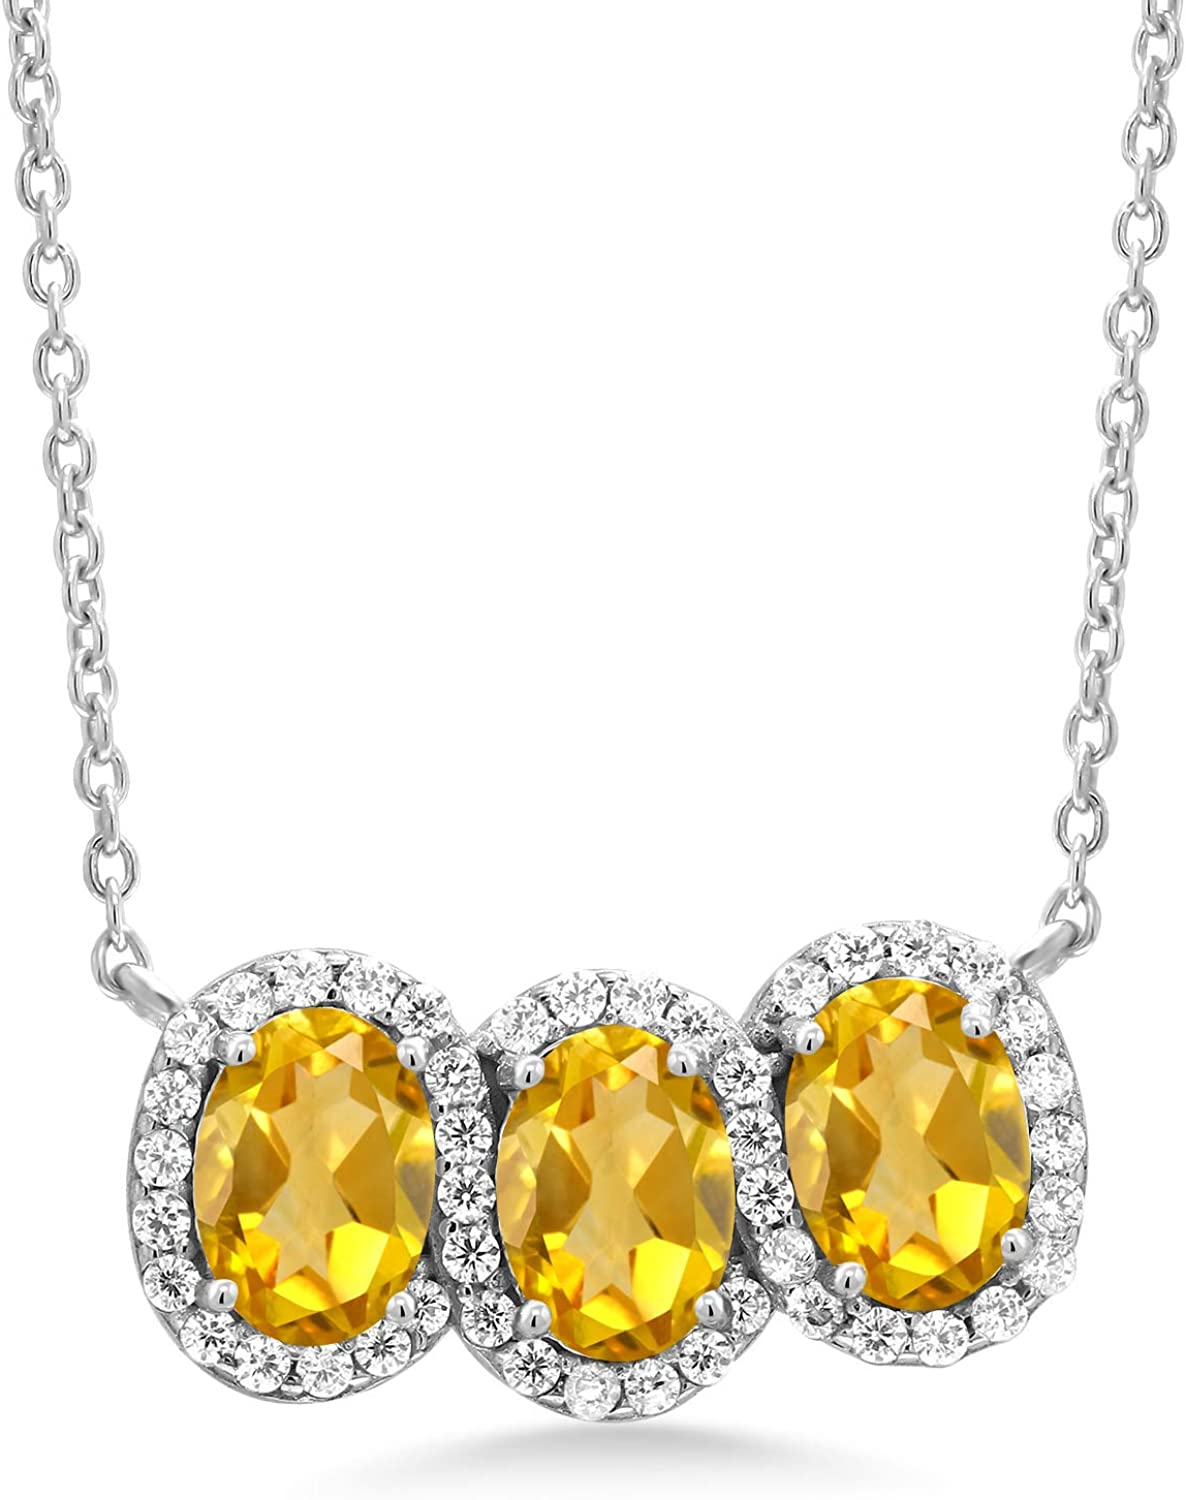 Sterling Silver and Citrine Three Stone Pendant Necklace